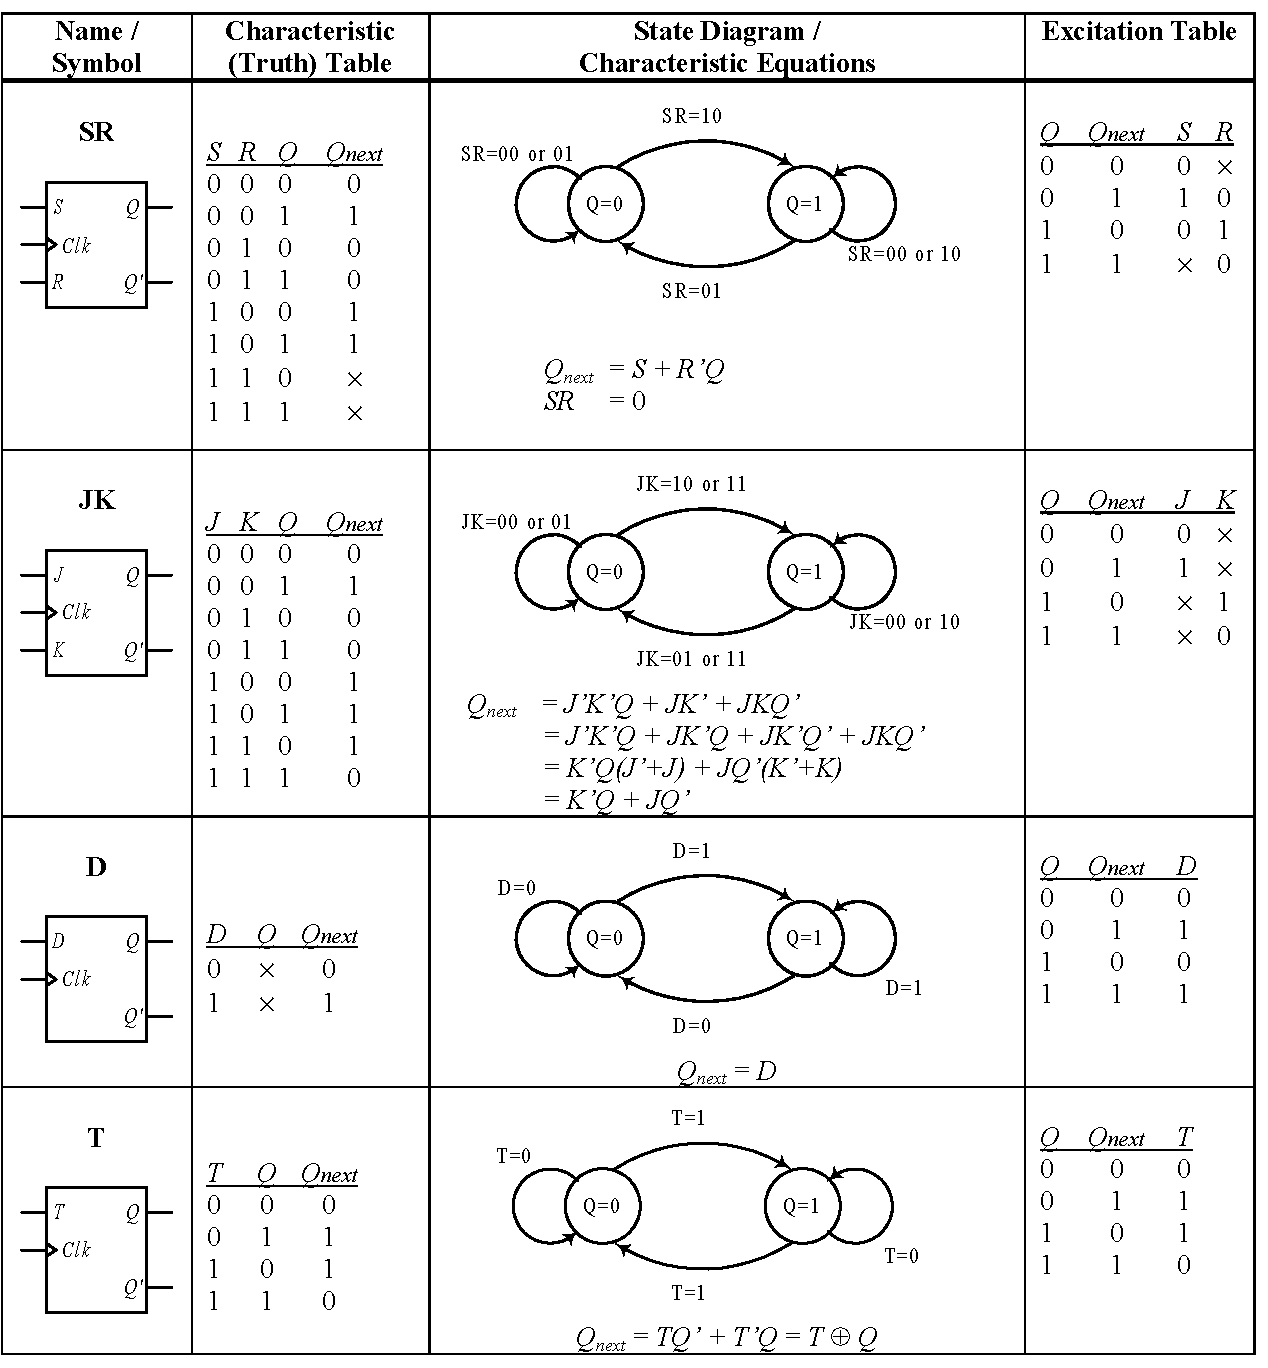 Gate 2014 Materials Previous Papers Computer Books Aptitude D Latch Logic Diagram The Flip Flops Can Be Described Fully And Uniquely By Its Symbol Characteristic Table Equation State Or Excitation